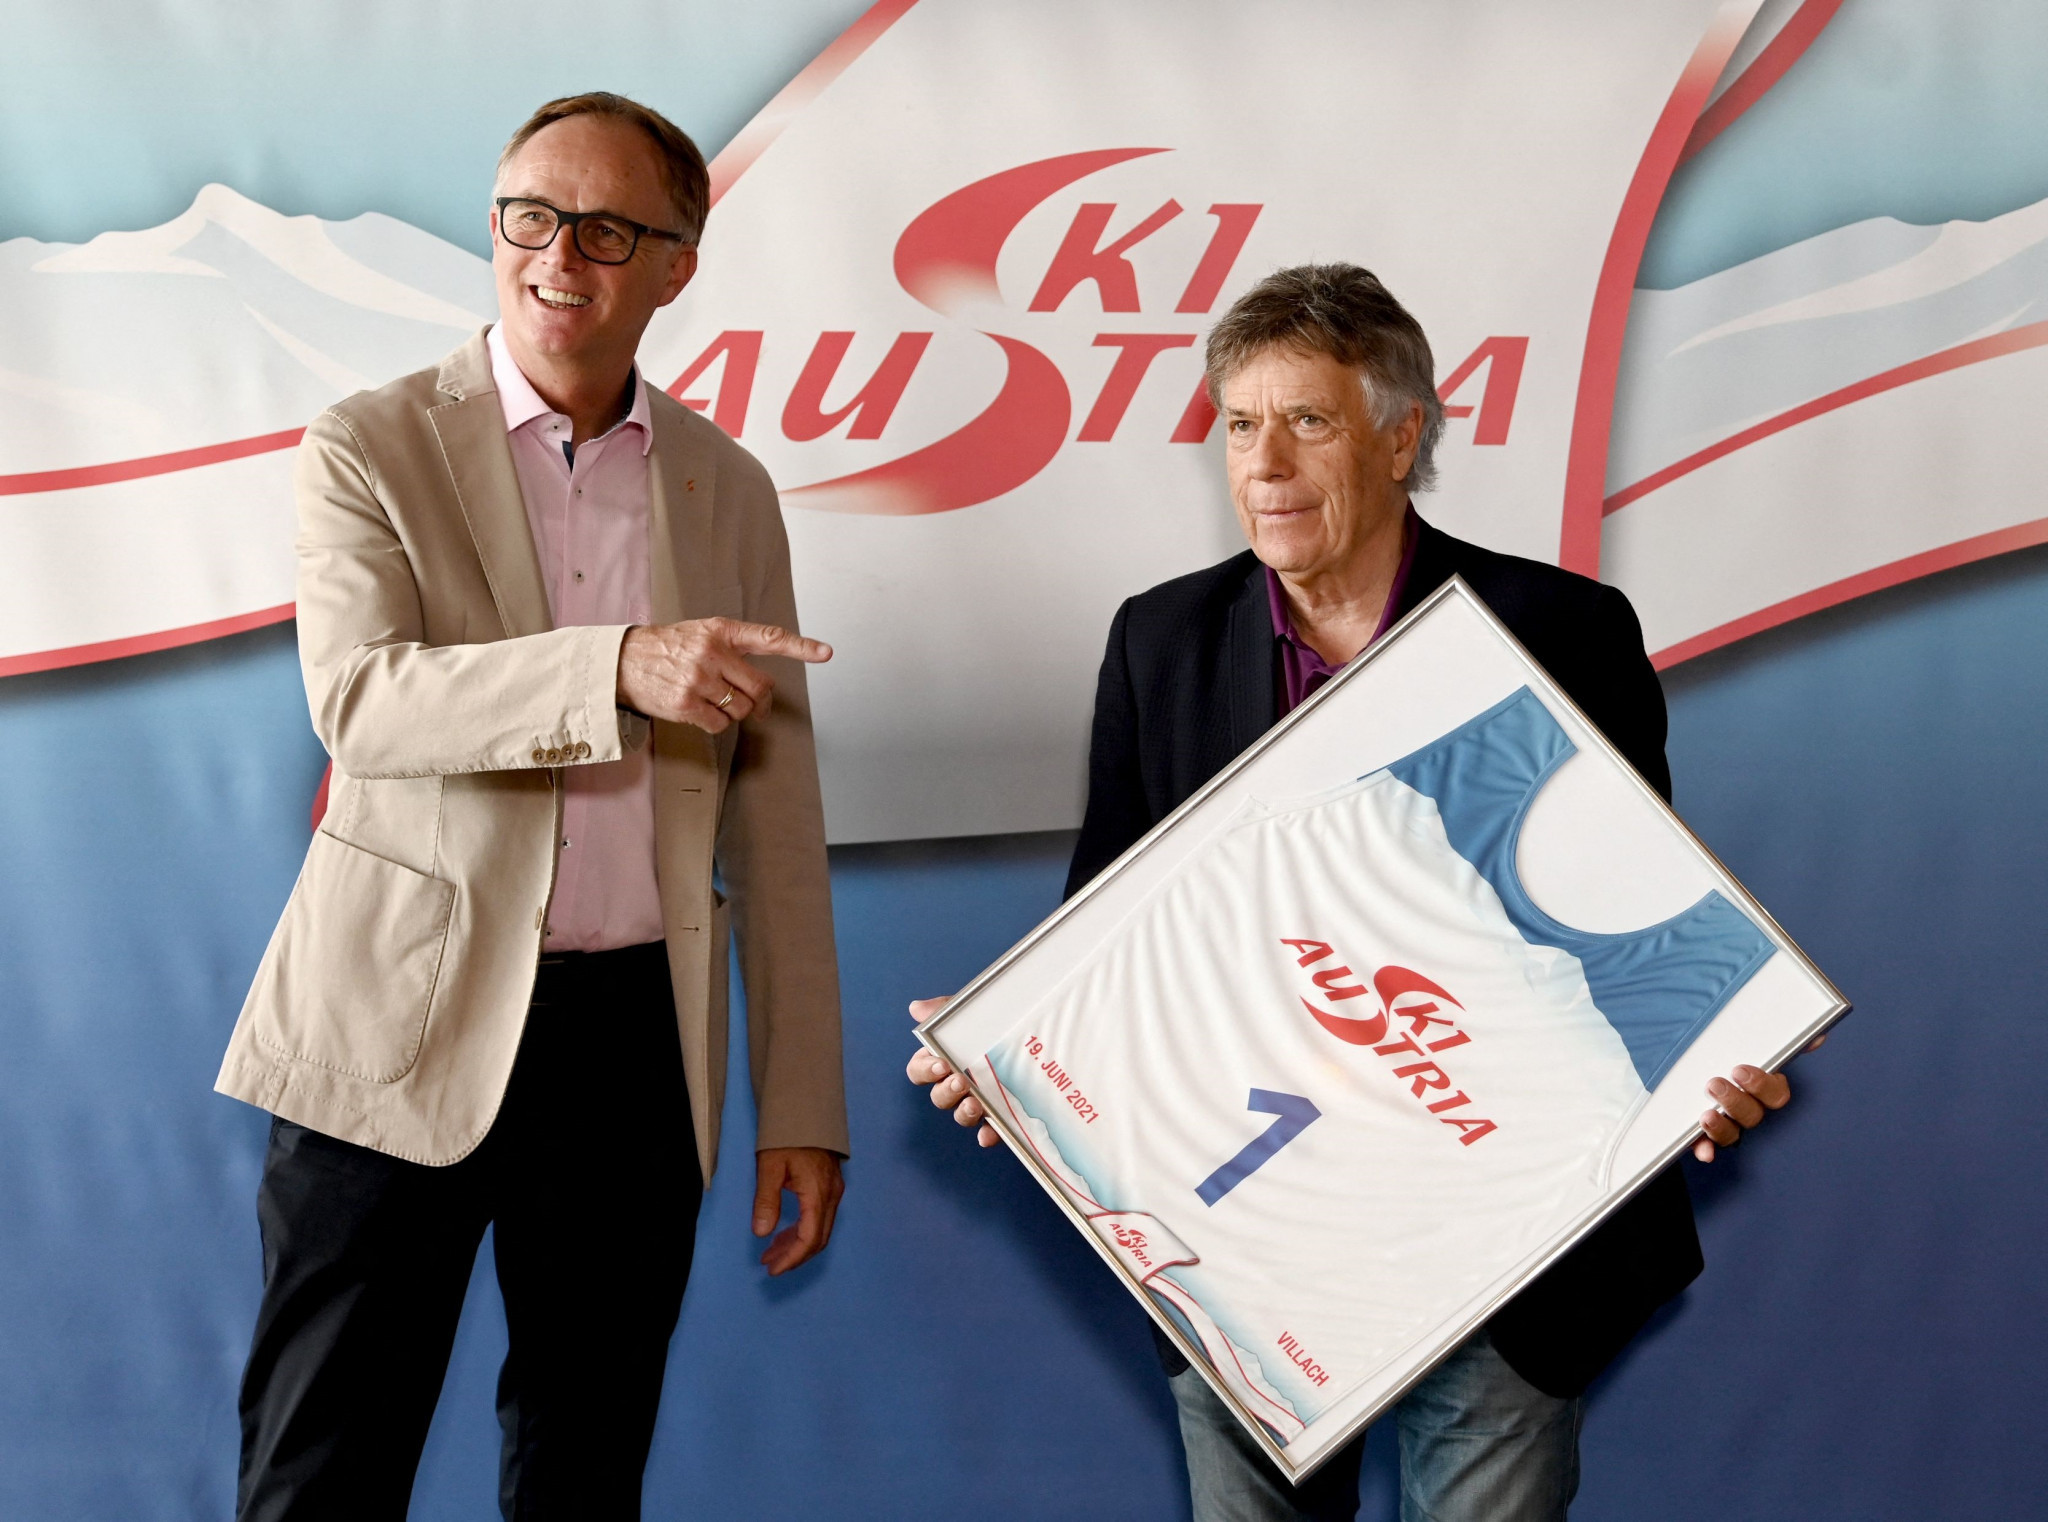 Shmidhofer quits as Austrian Ski Federation President after fewer than 100 days in charge